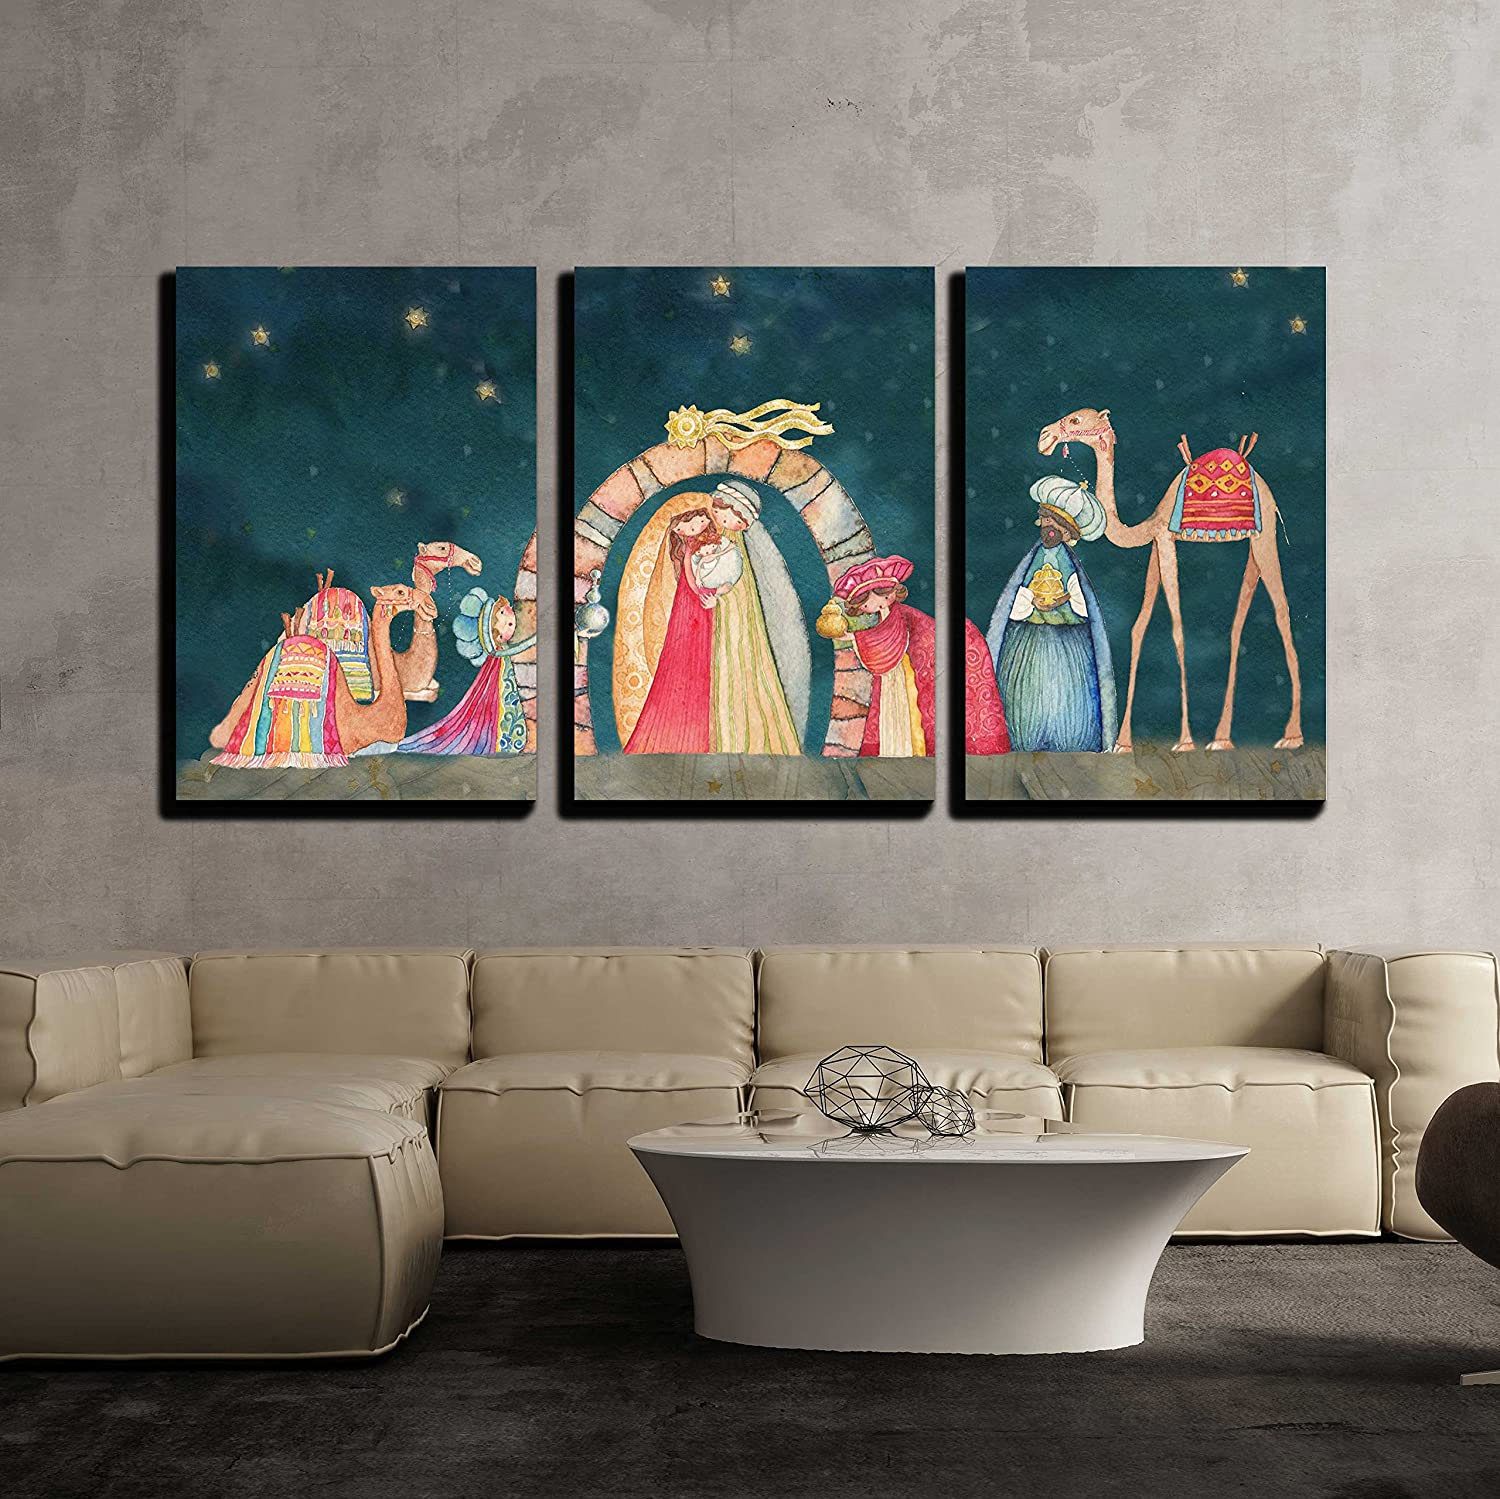 wall26 - 3 Piece Canvas Wall Art - Illustration Christian Christmas Nativity Scene with The Three Wise Men - Modern Home Art Stretched and Framed Ready to Hang 16